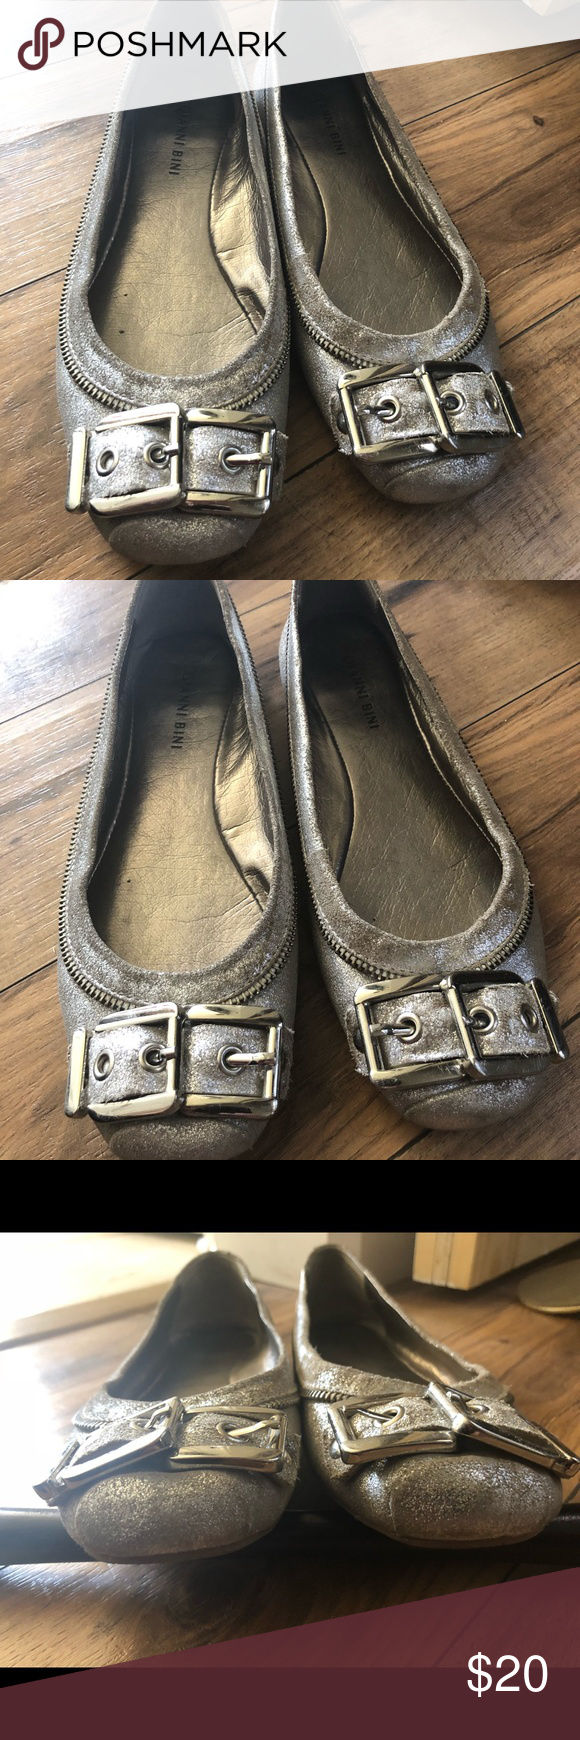 "ae86f41d1a0 Gianni bini flats These are made to look a little ""worn"". Only worn ..."